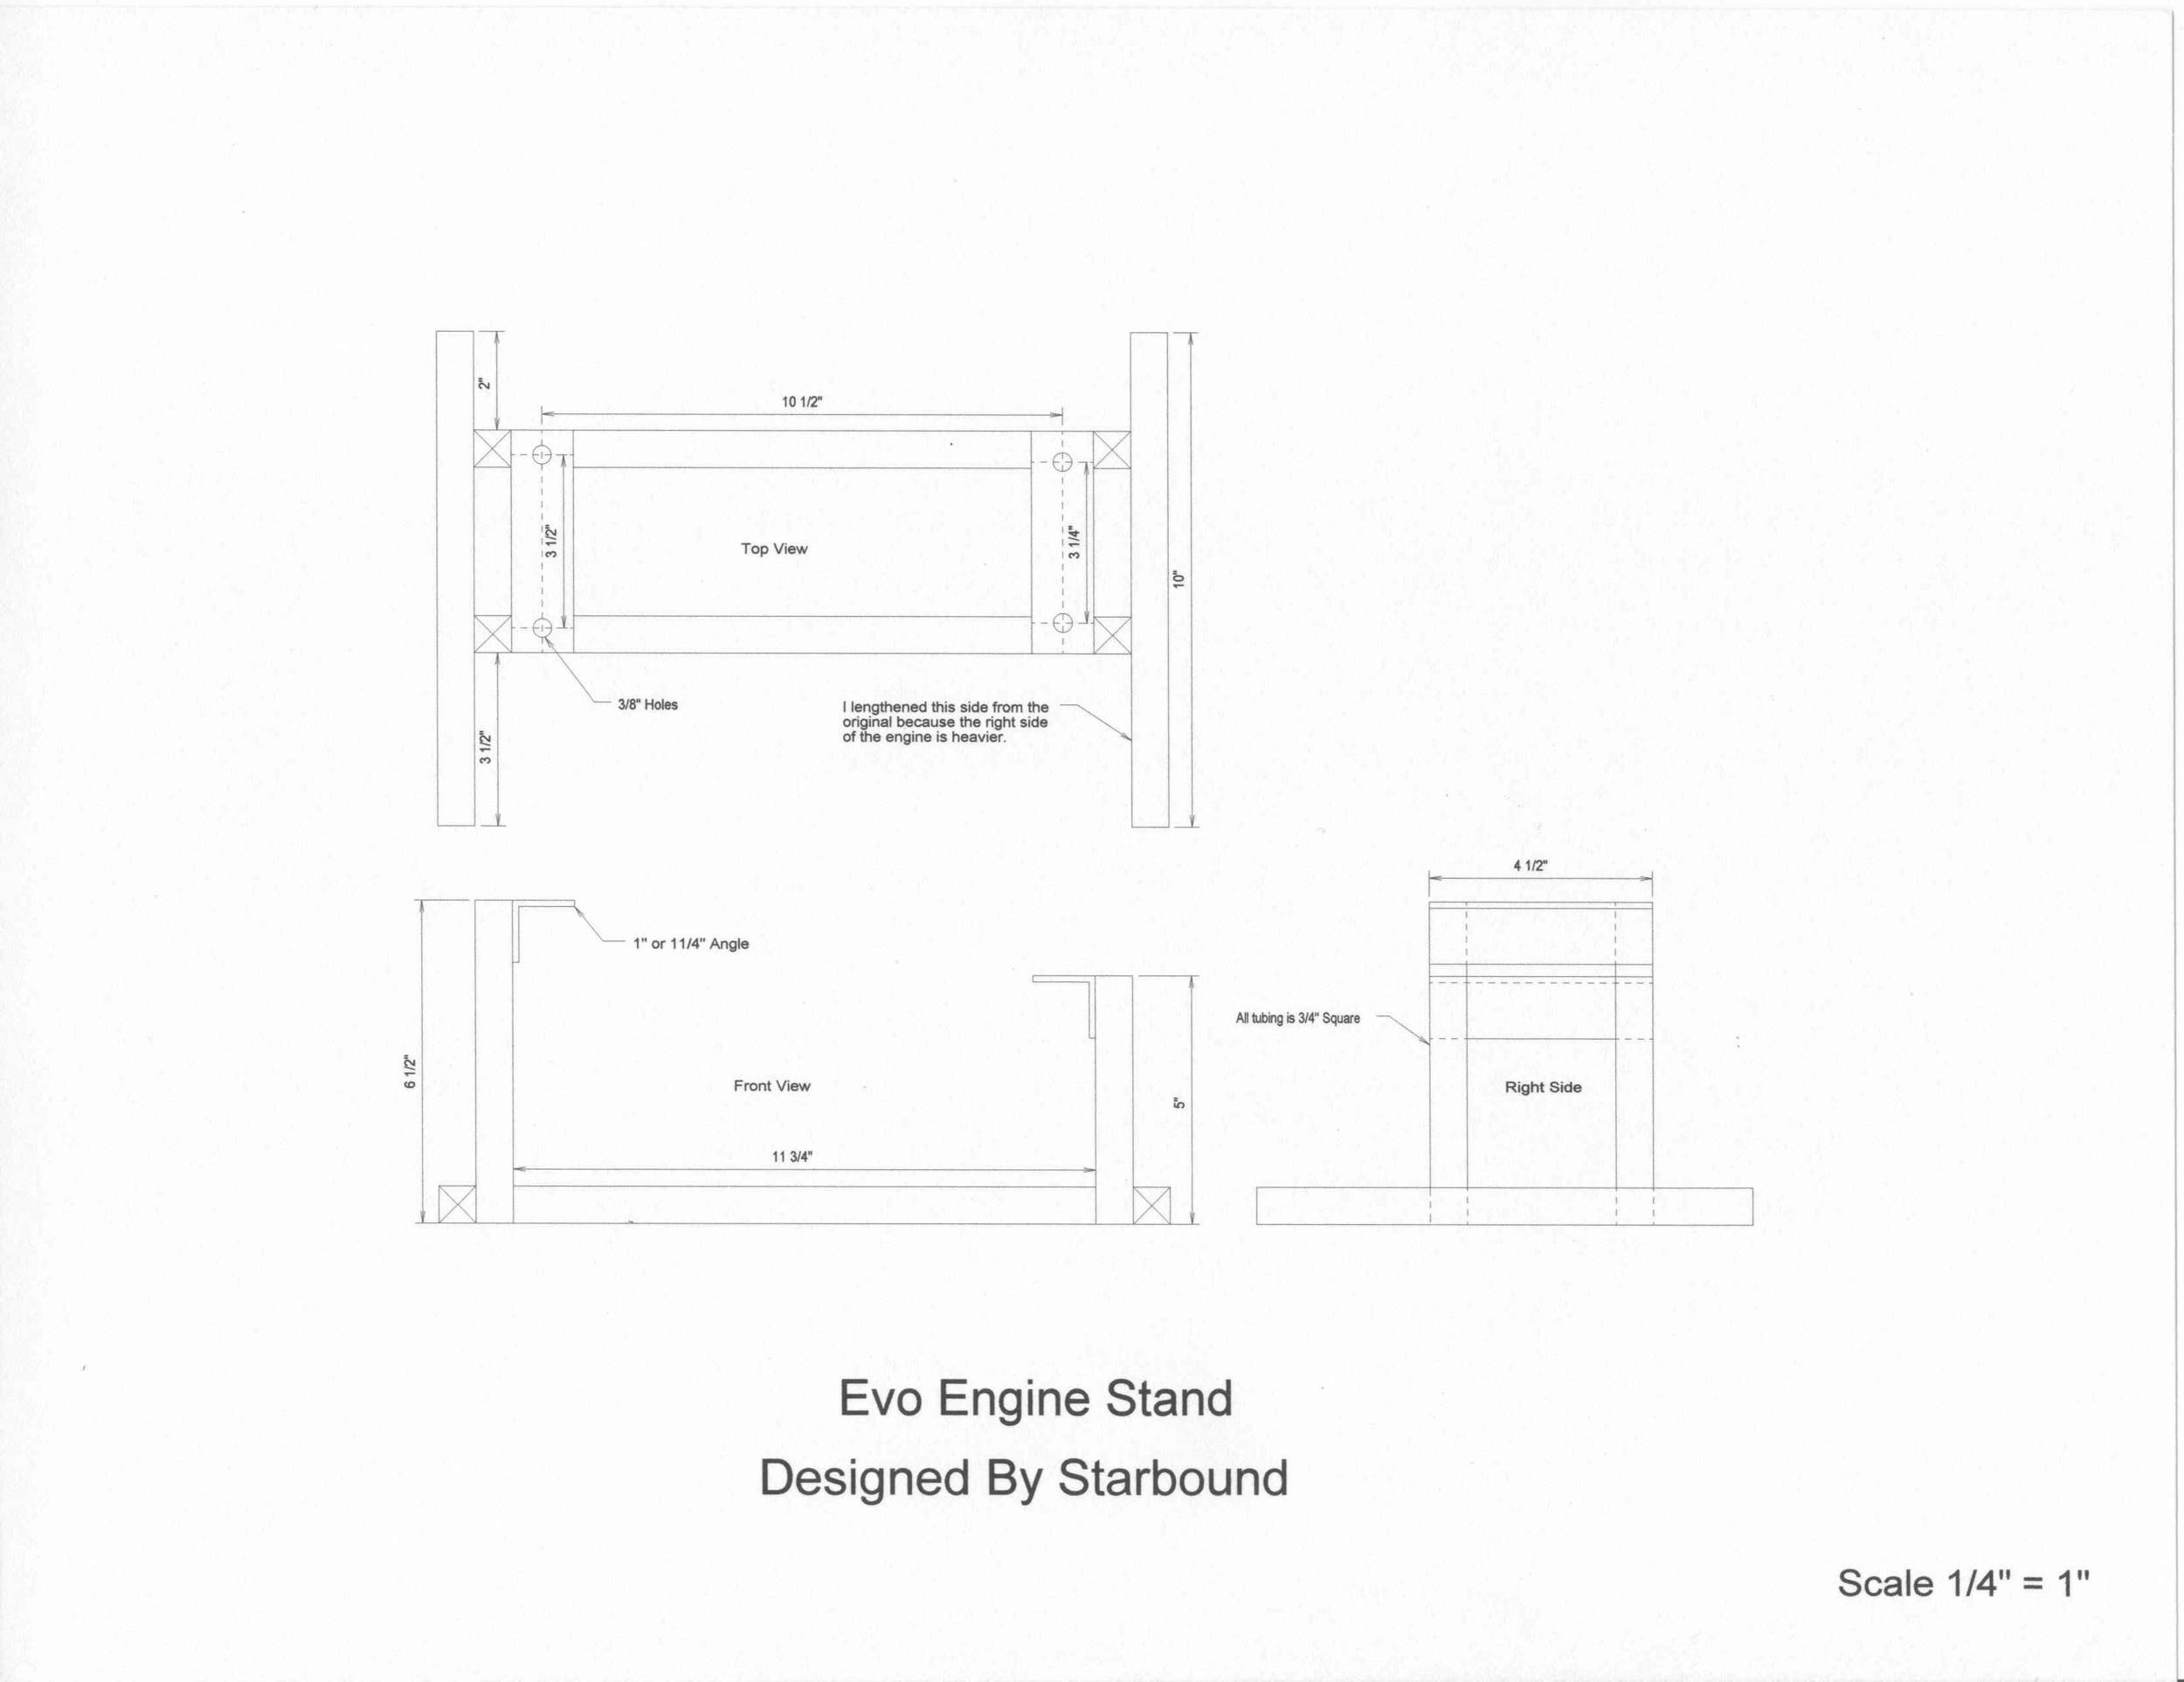 medium resolution of 80 harley evolution engine diagram wiring diagramplans for a harley motor stand u2013 mustaribrandharley